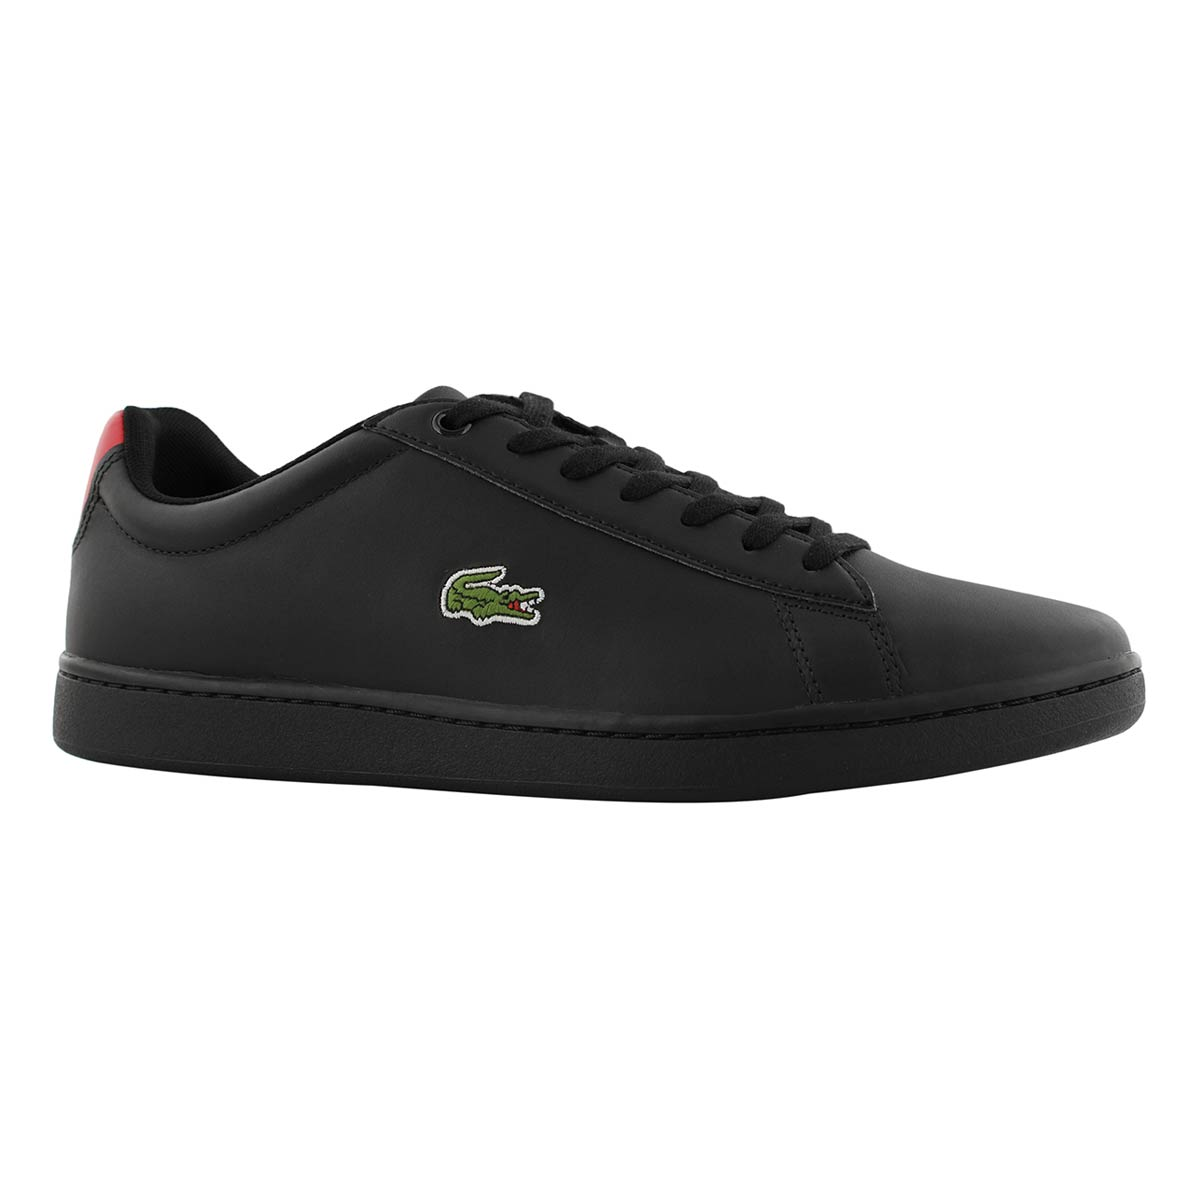 Mns Hydez 318 1 P blk/red sneaker